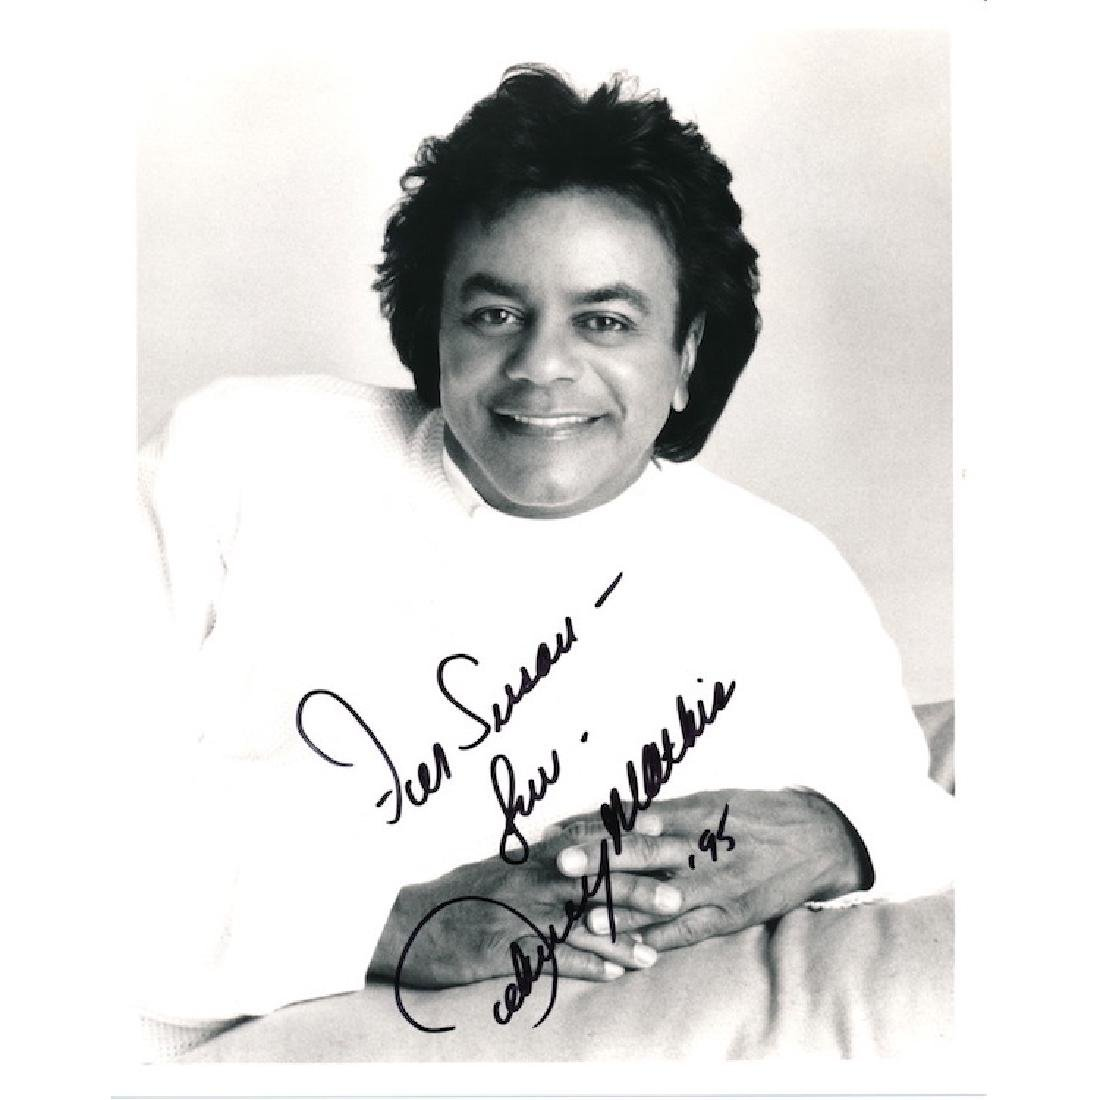 Johnny Mathis Autographed Photograph